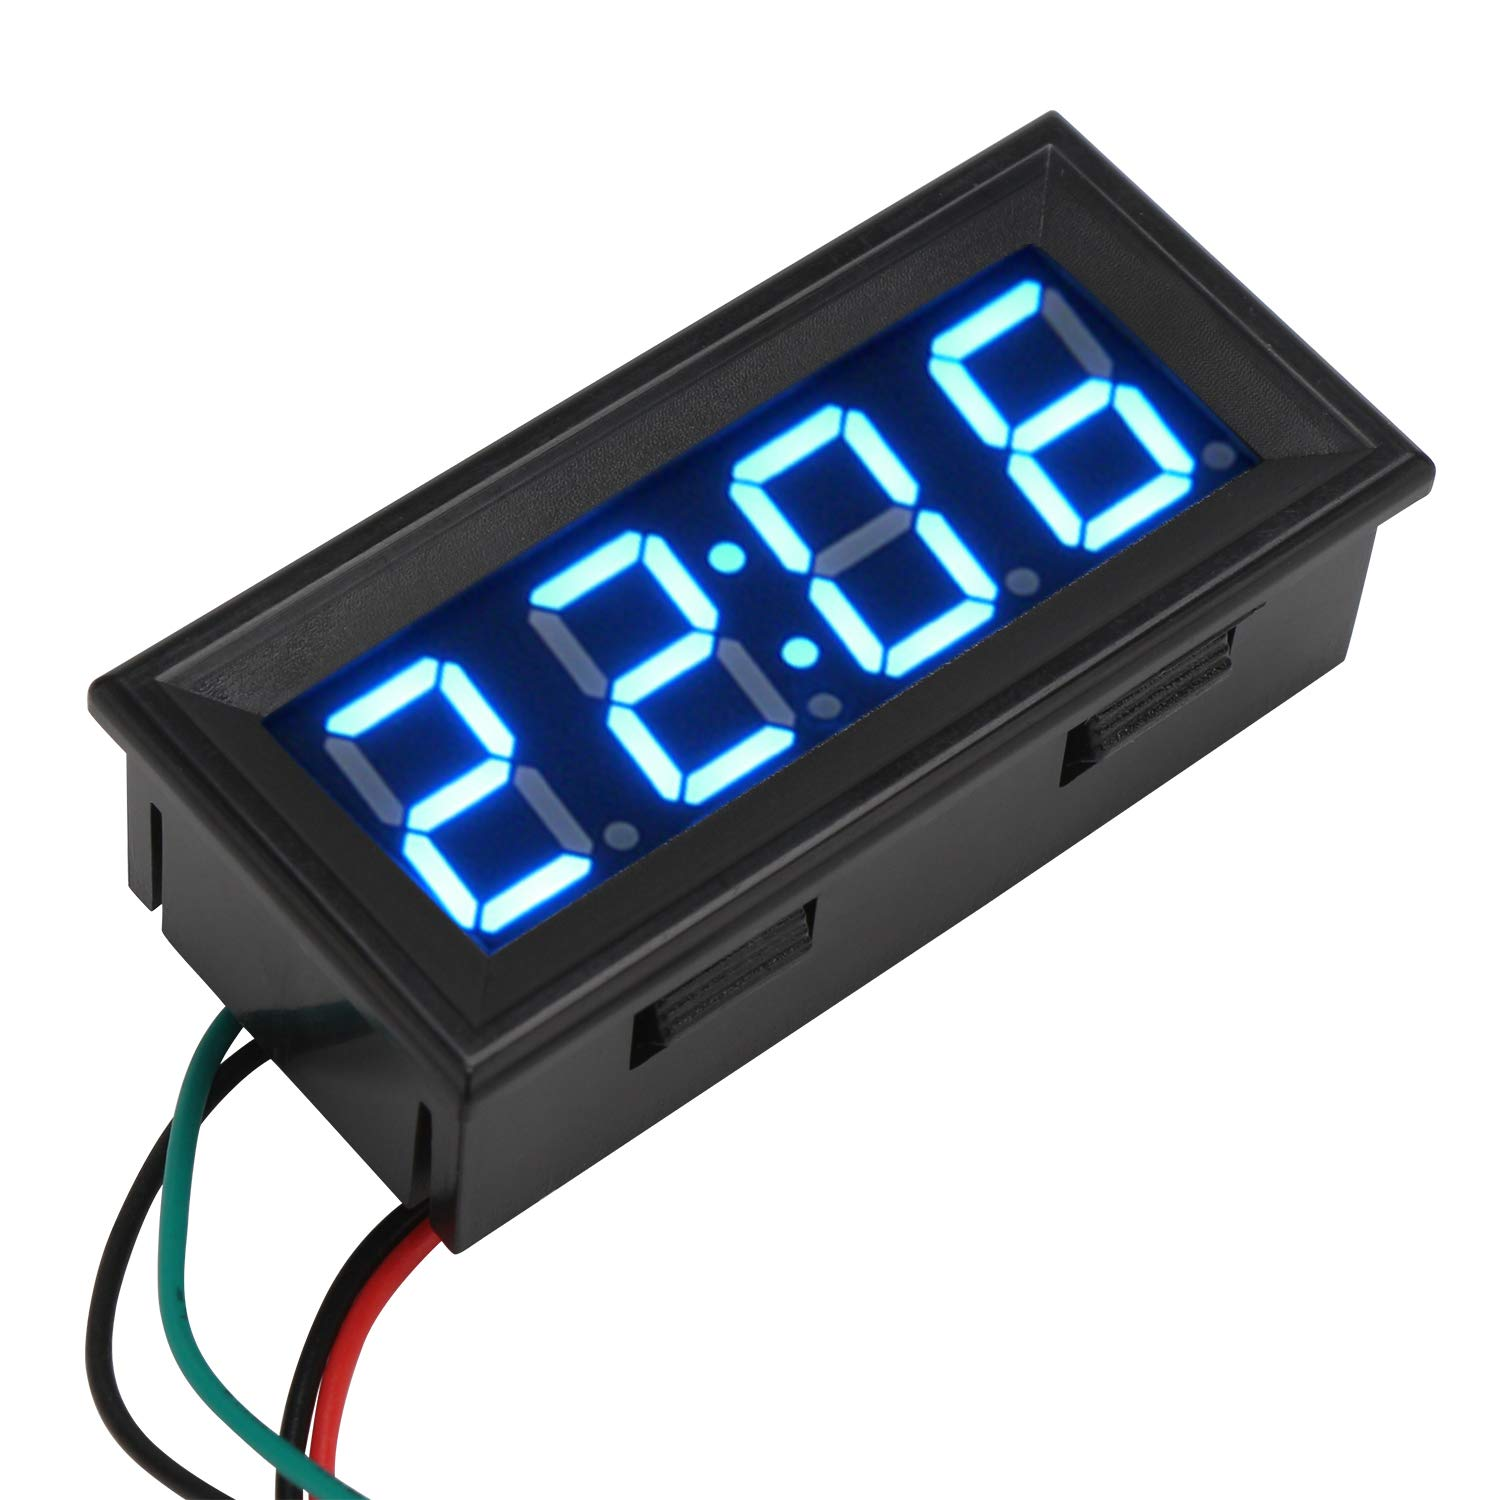 SimpleLife DC 12V Digital LED RGB Dashboard Waterproof Auto Clock Time for Car Motorcycle